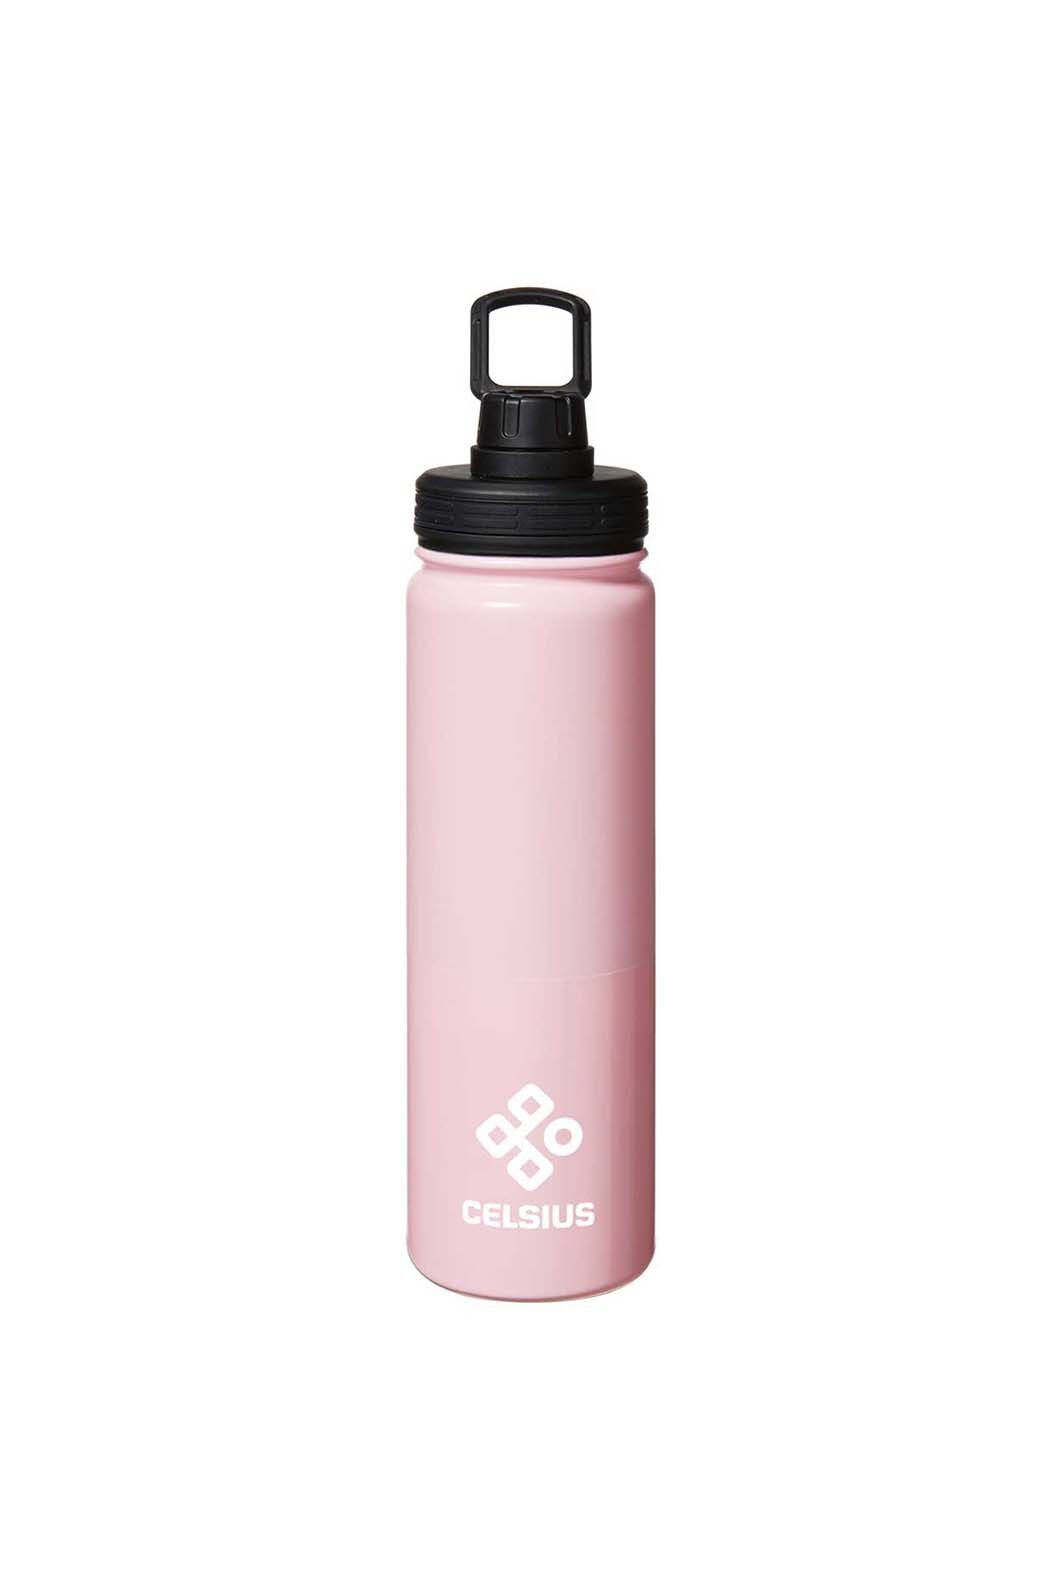 Celsius Stainless Insulated 650ml Water Bottle, Pink, hi-res